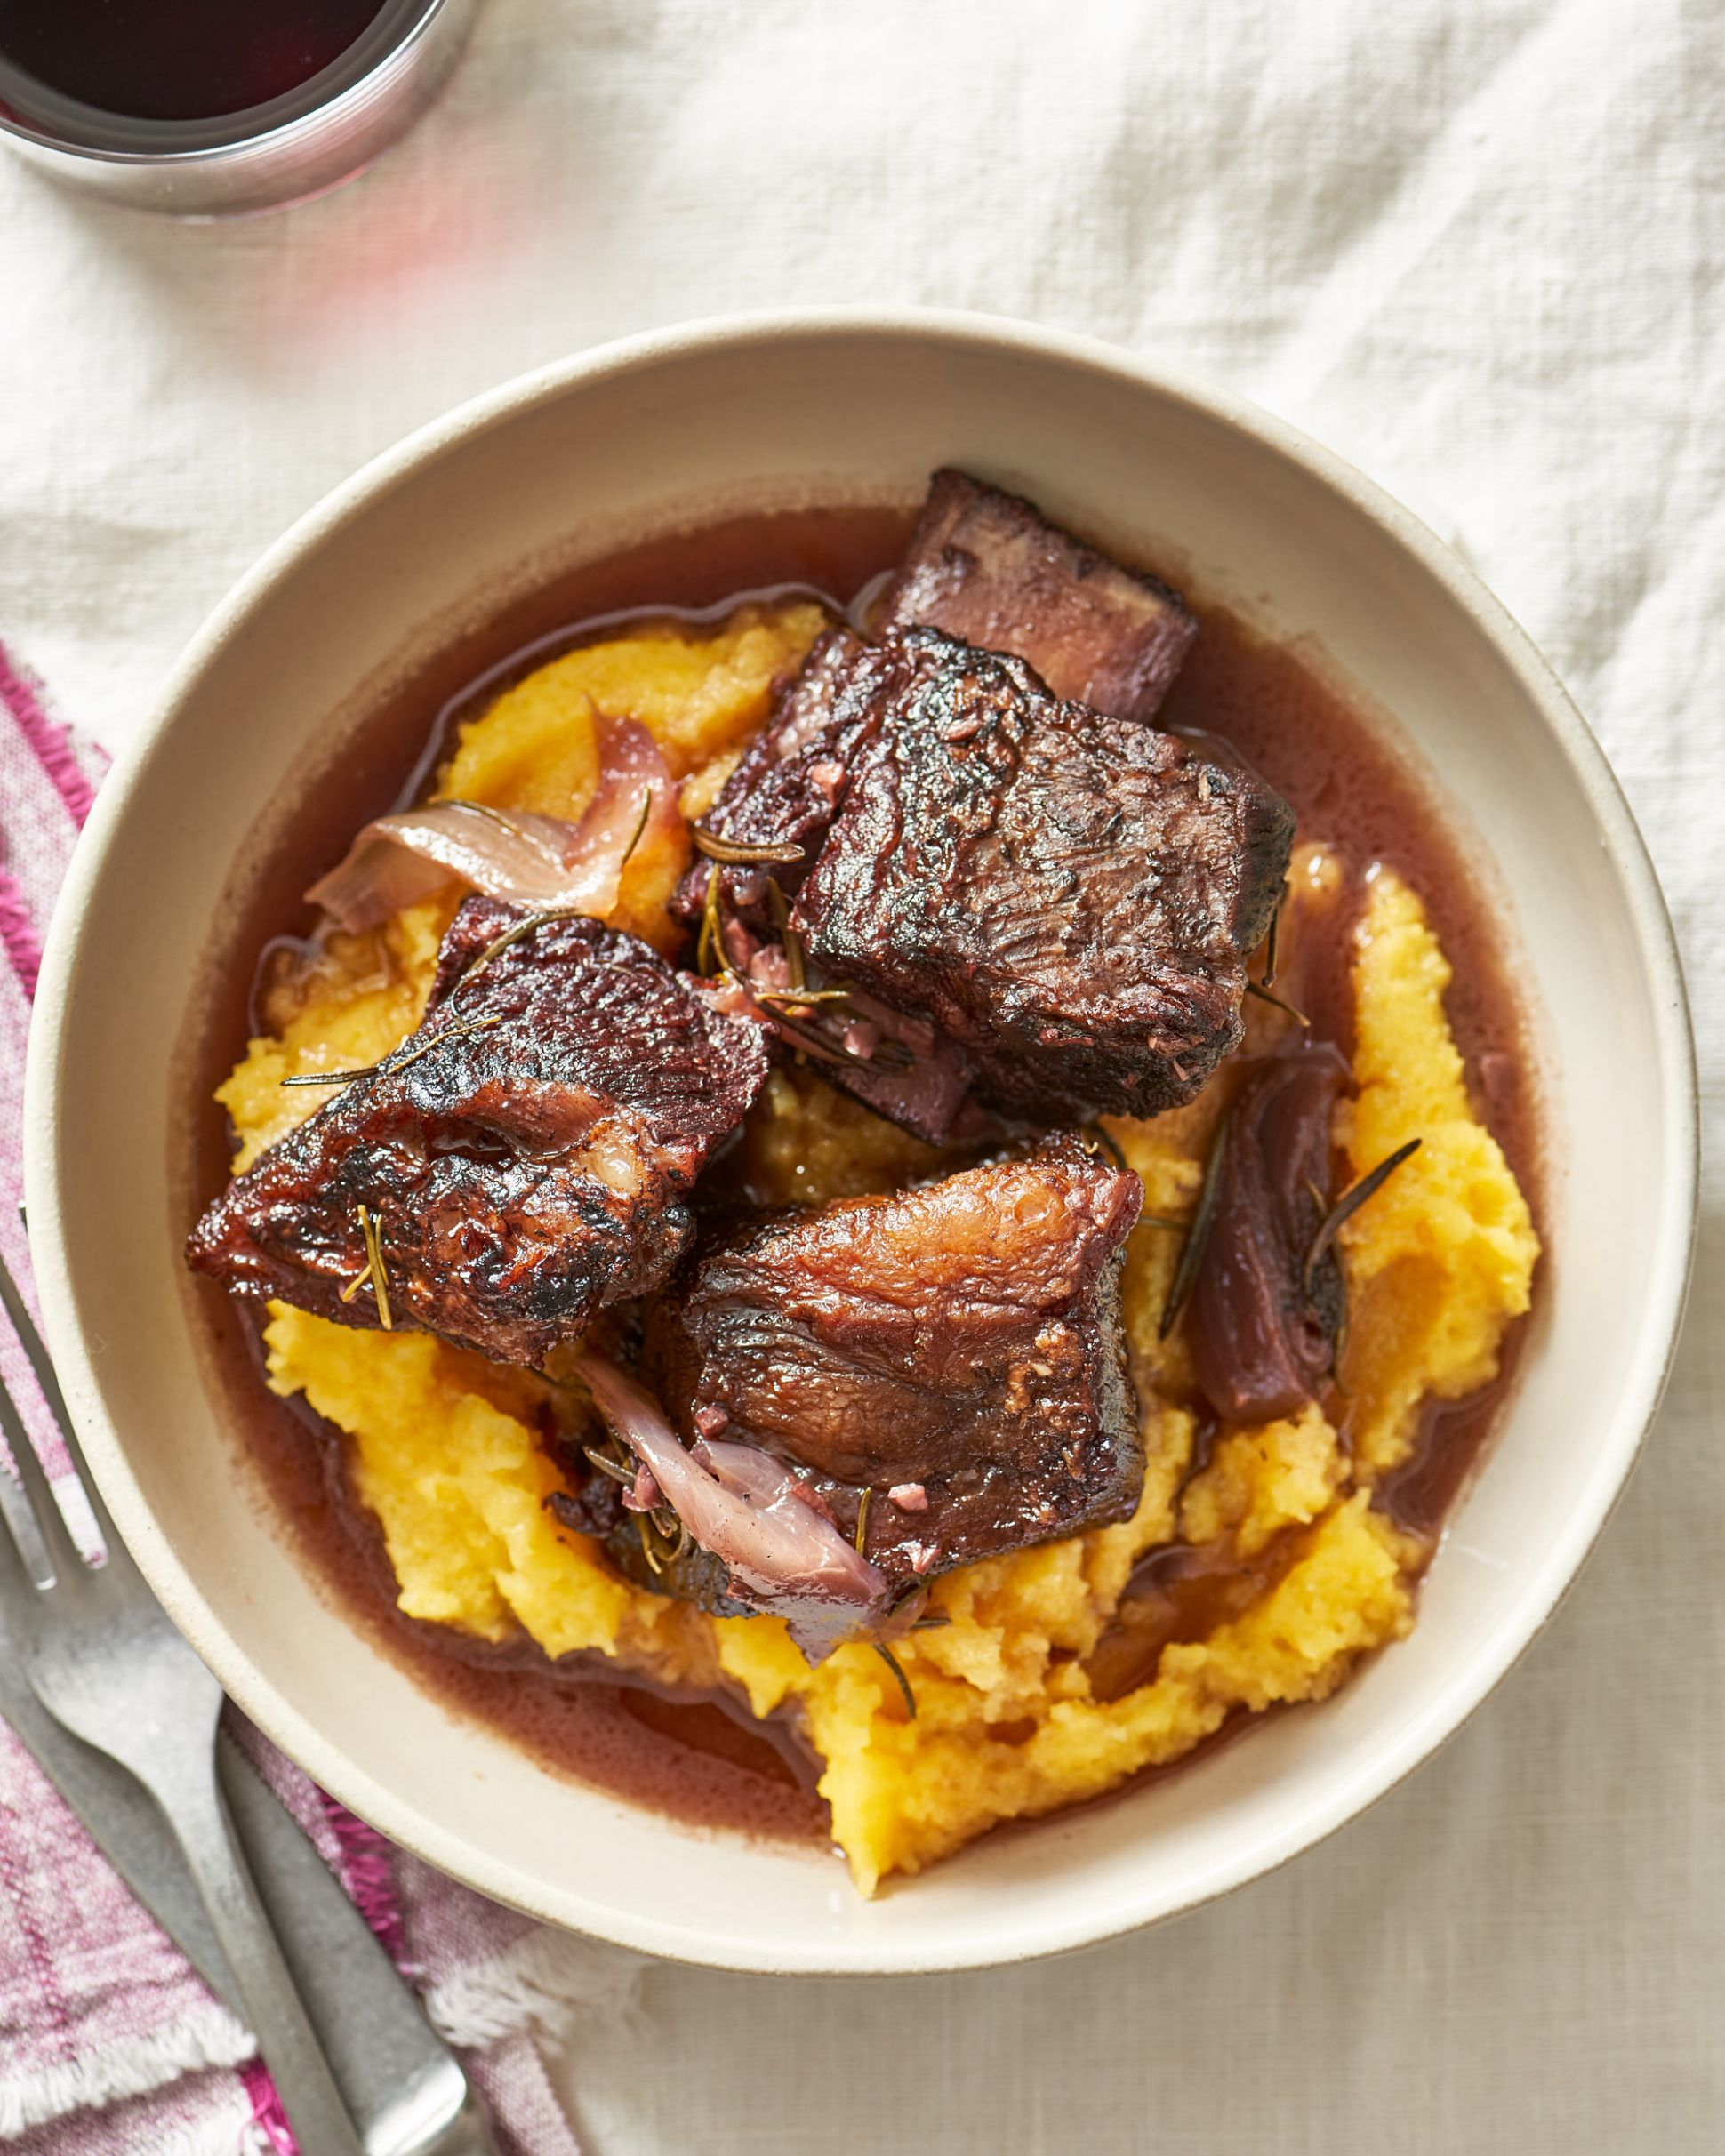 How To Make Braised Short Ribs in the Oven - Recipes Beef Short Ribs